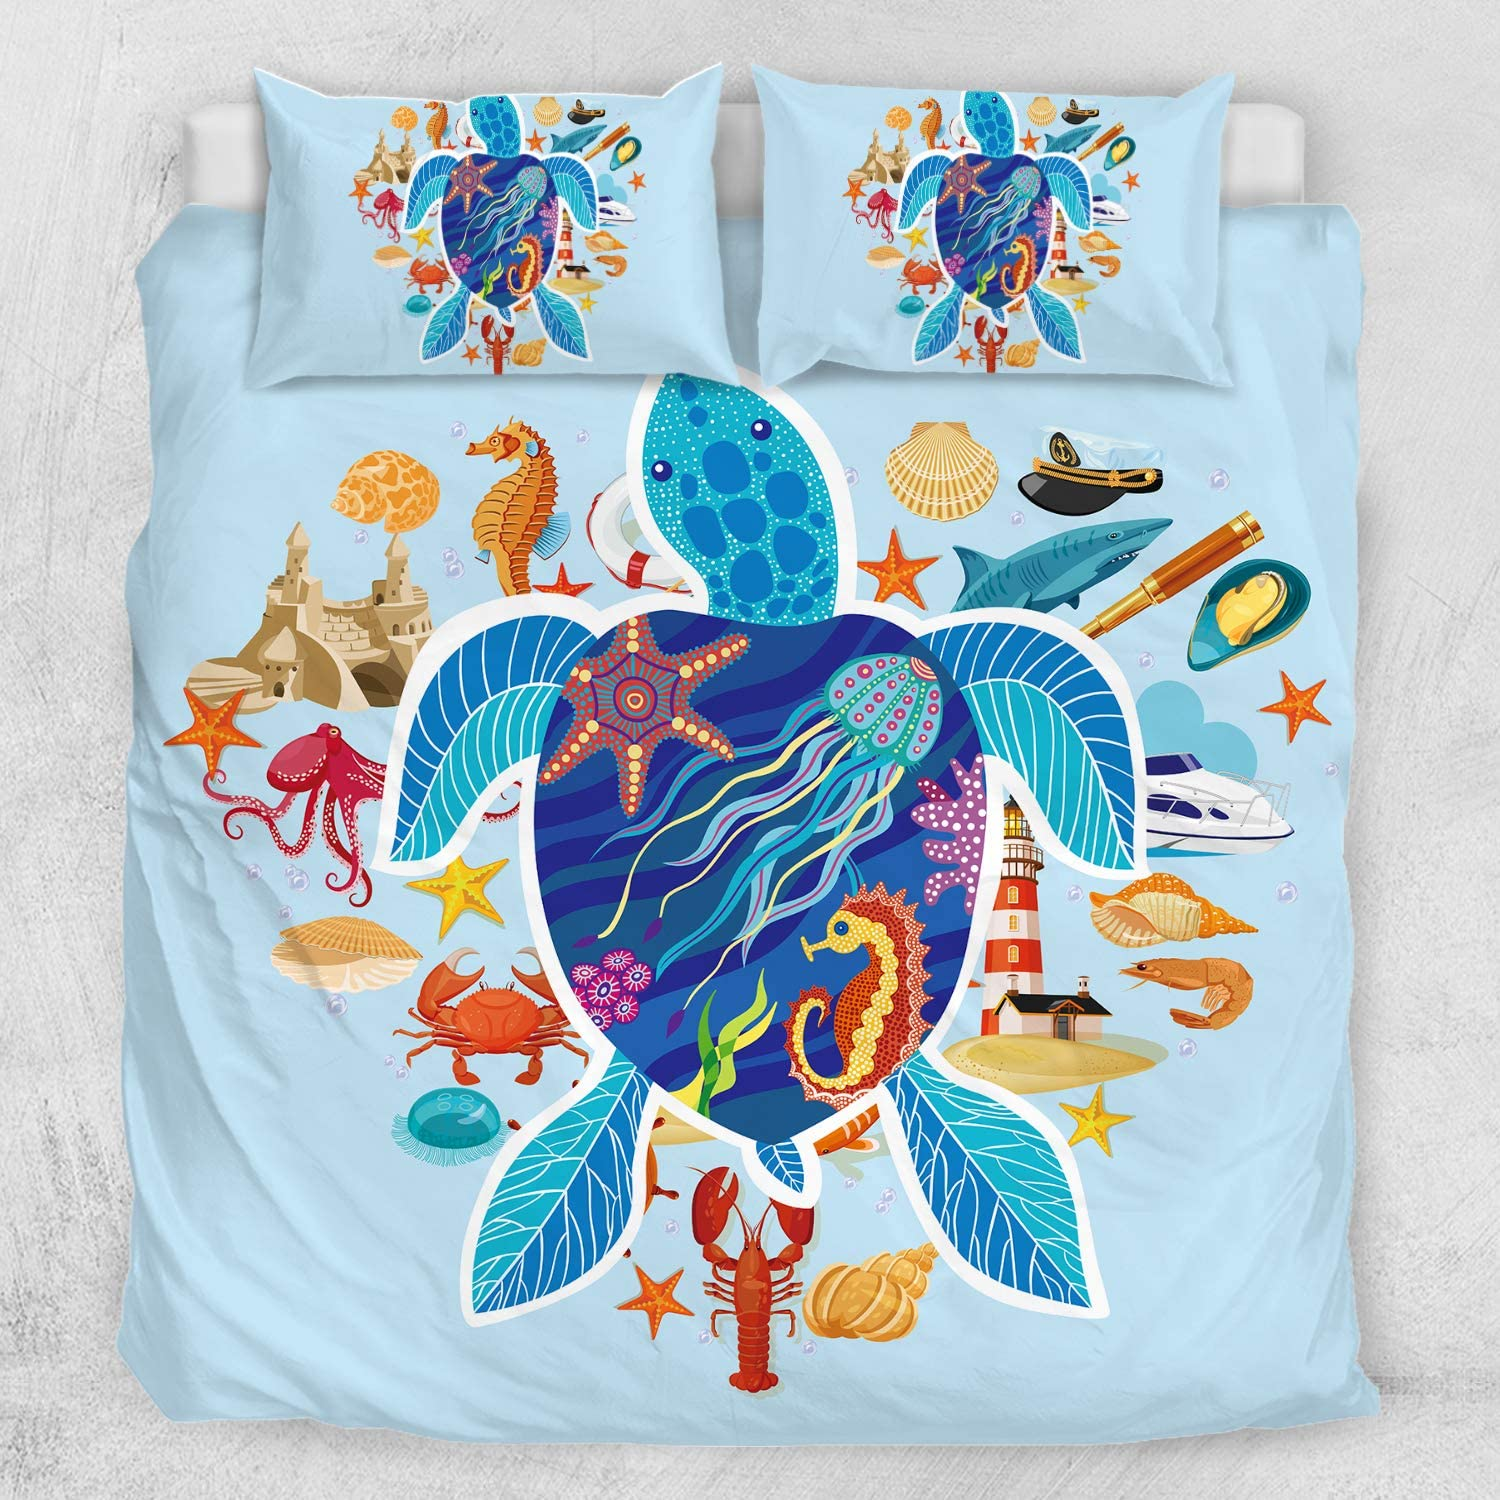 ARIGHTEX Turtle Bedding Sea Blue Duvet Cover Ocean 3D Corals Fishes Print for Teens Boys and Girls Sealife 3-Piece Quilt Set Full